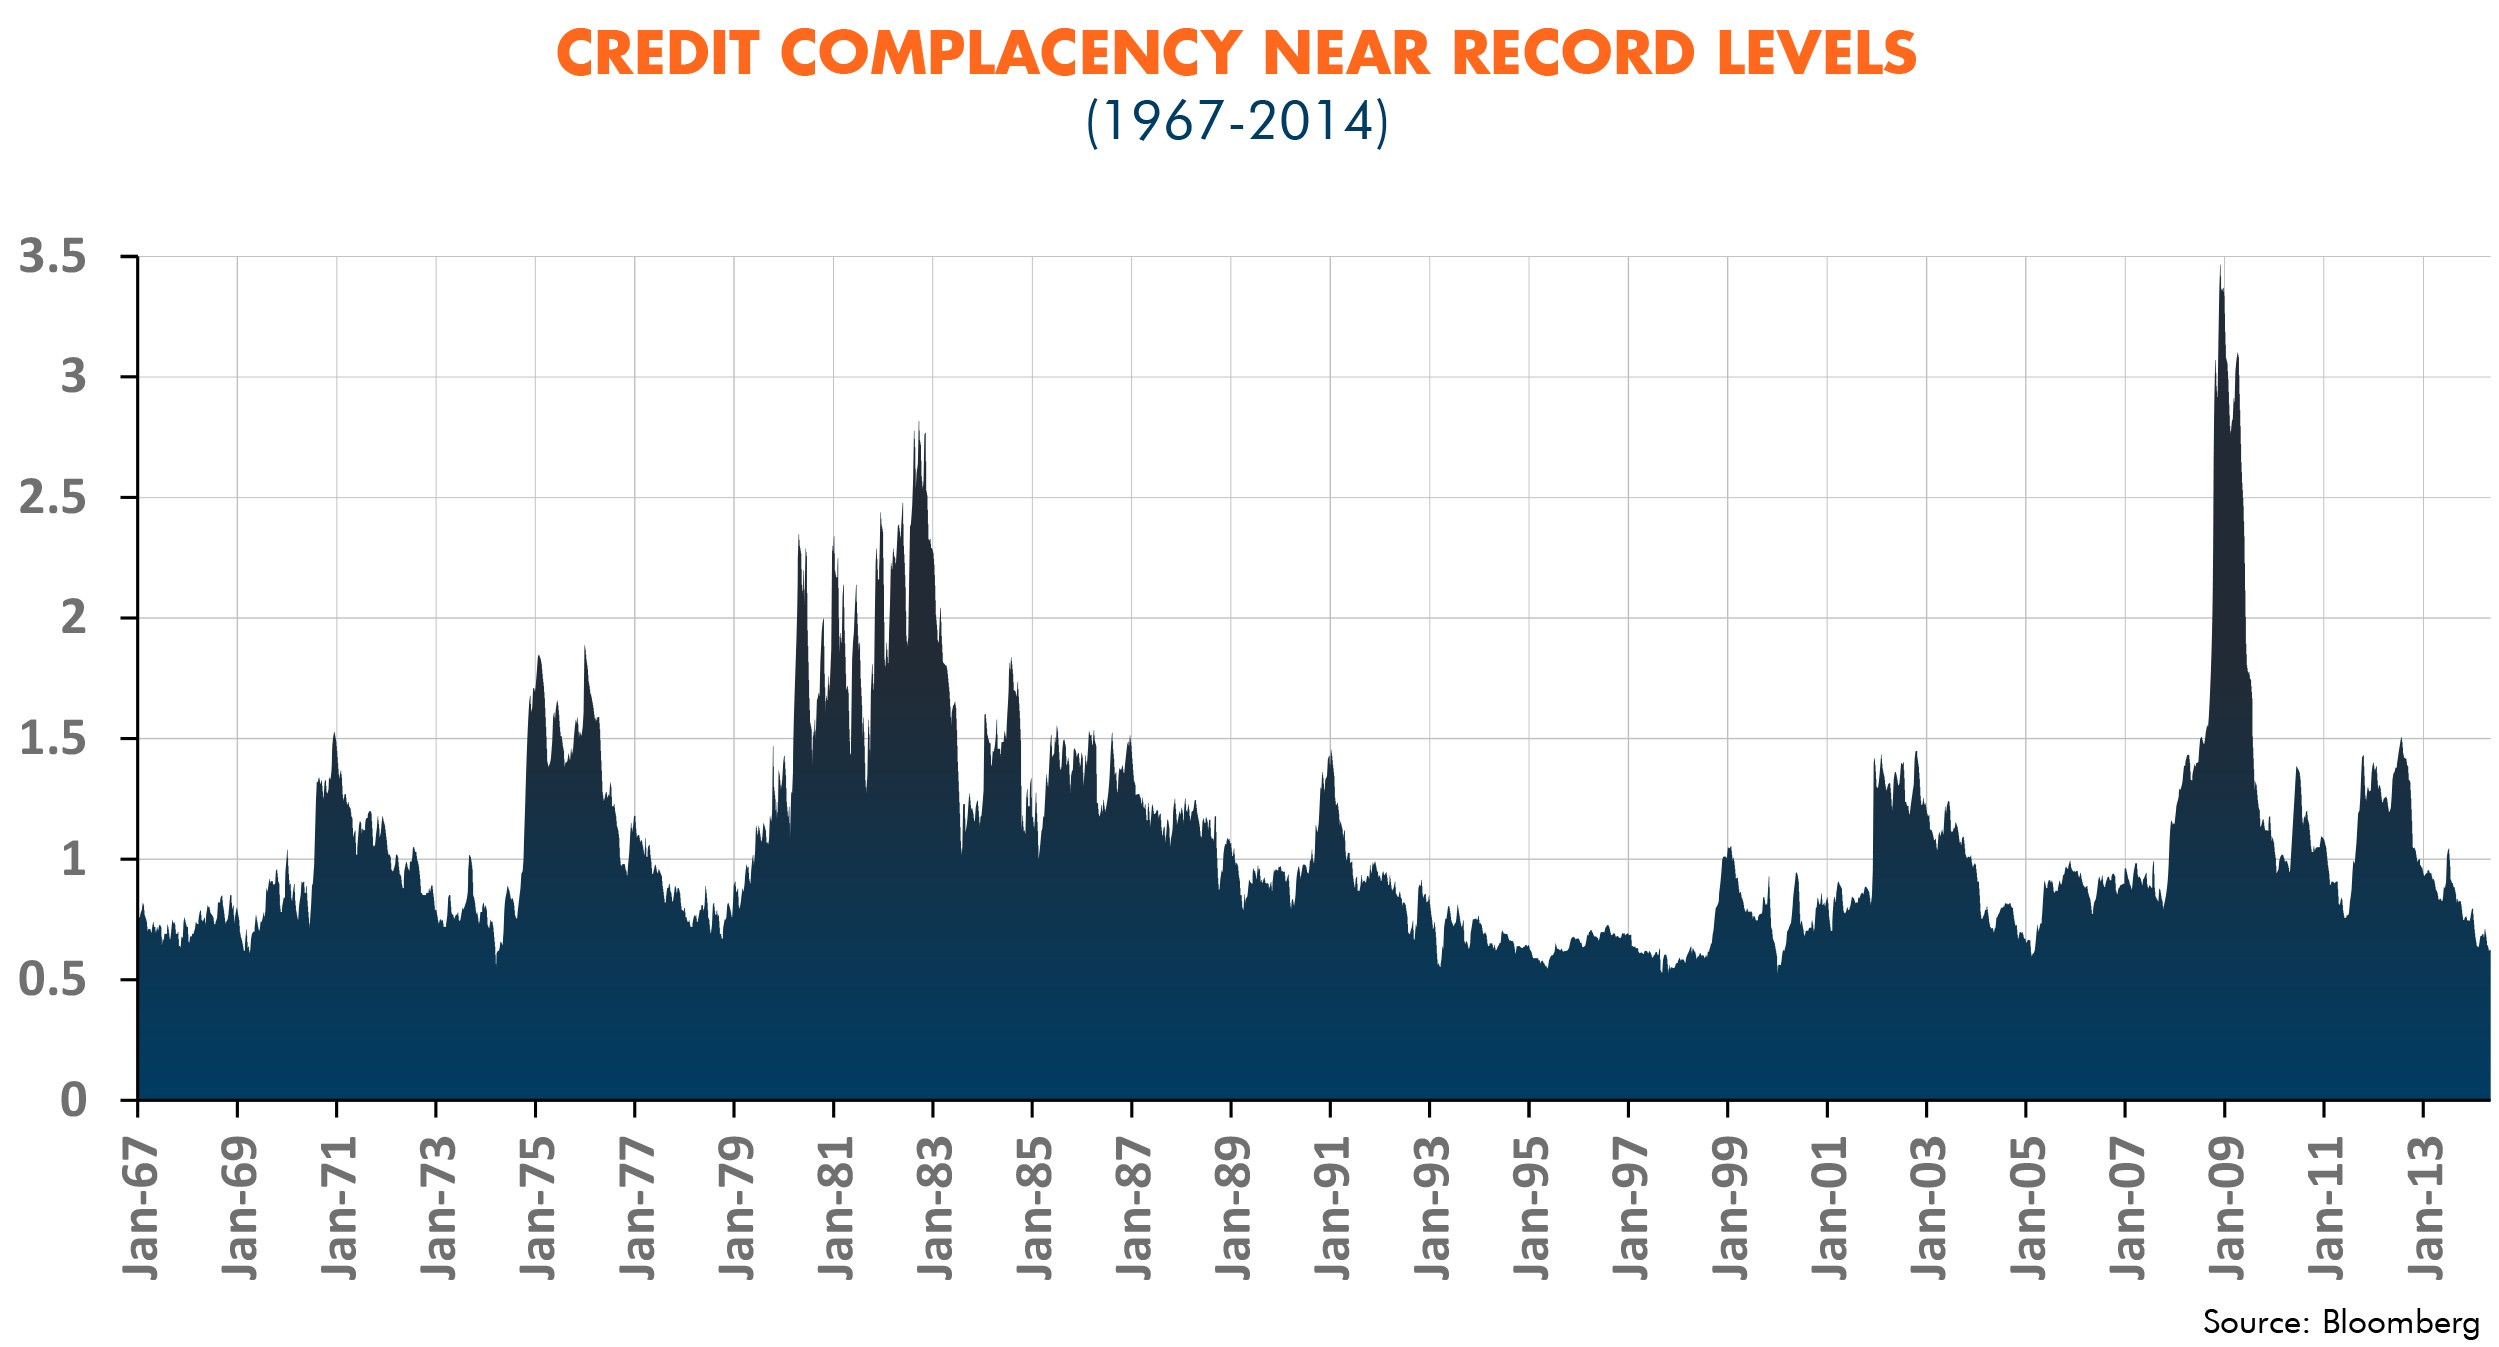 Credit Complacency Near Record Levels